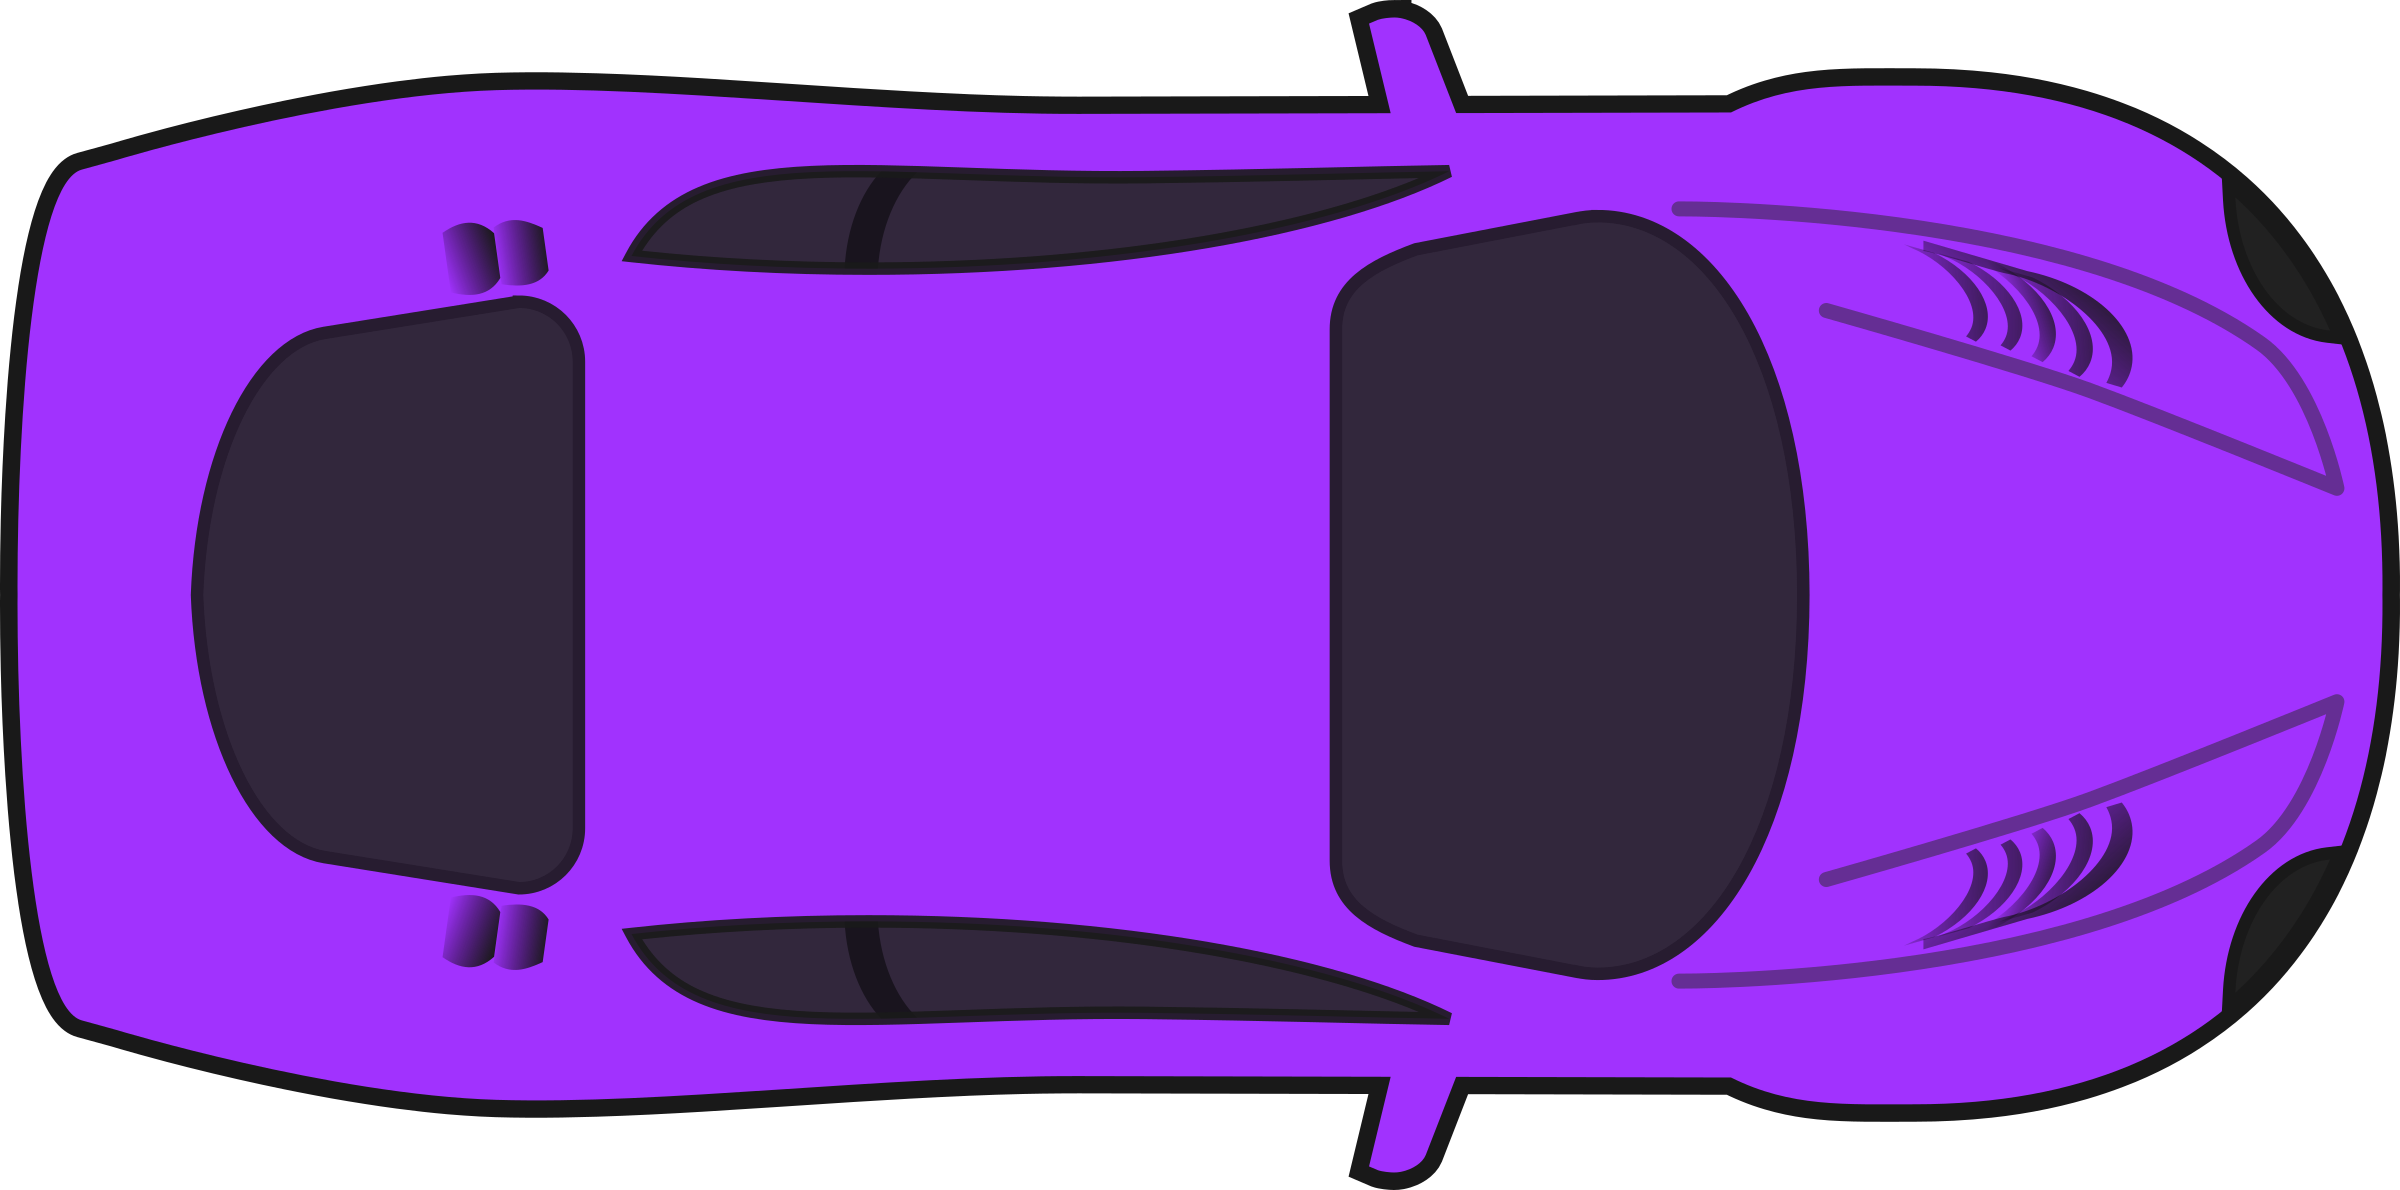 Purple racing car top. Clipart cars simple